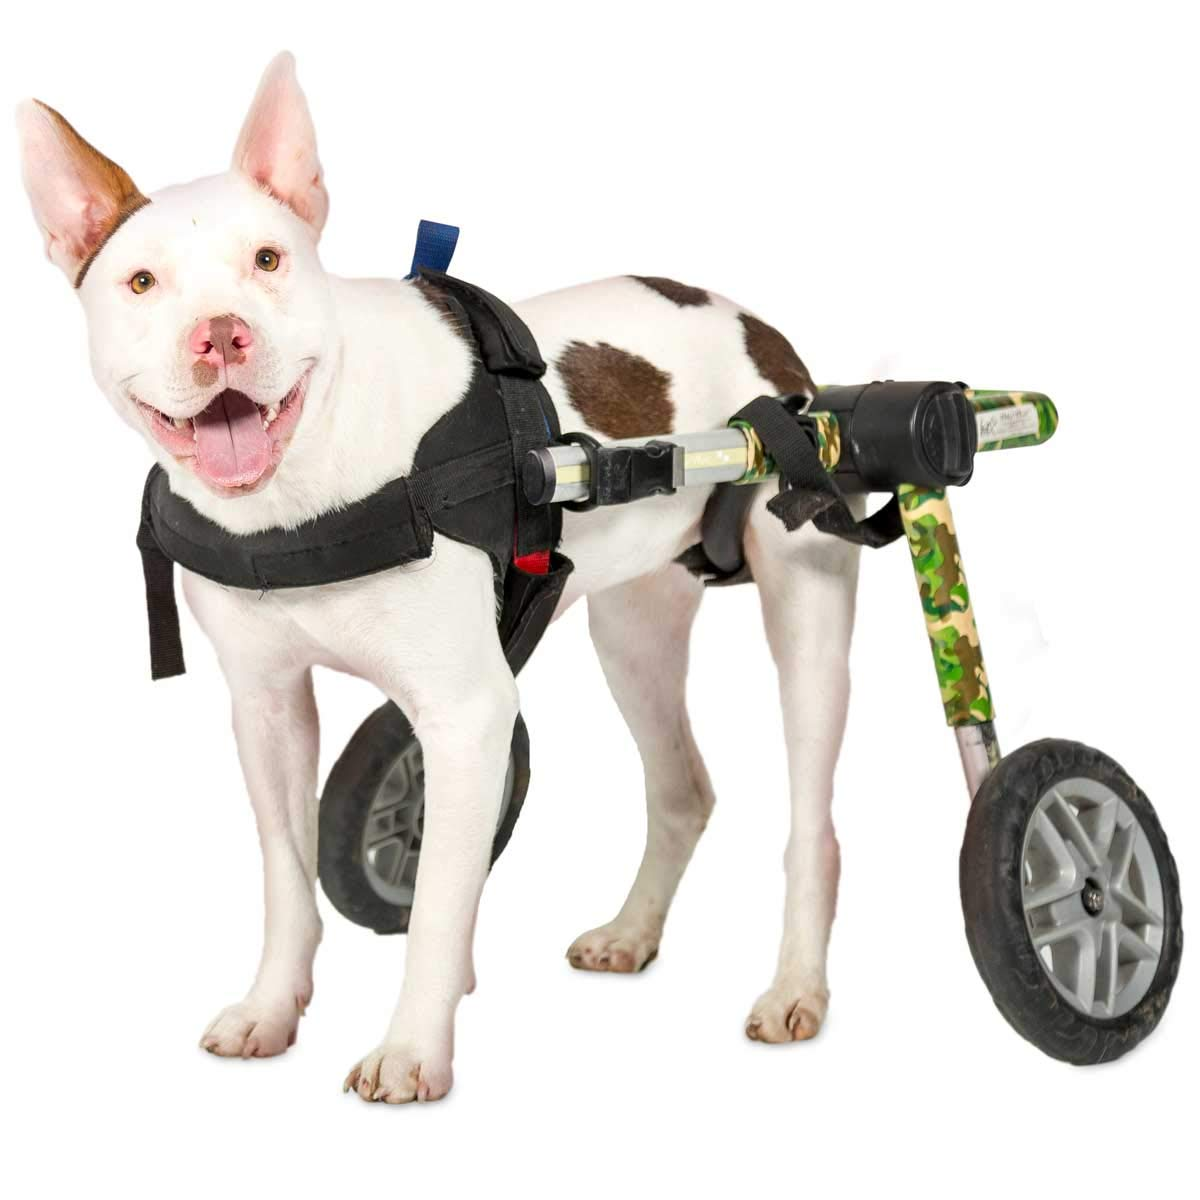 Camouflage 26-49 lbs, 10-13\ Camouflage 26-49 lbs, 10-13\ Dog Wheelchair For Medium Dogs 26-49 lbs Veterinarian Approved Wheelchair for Back Legs